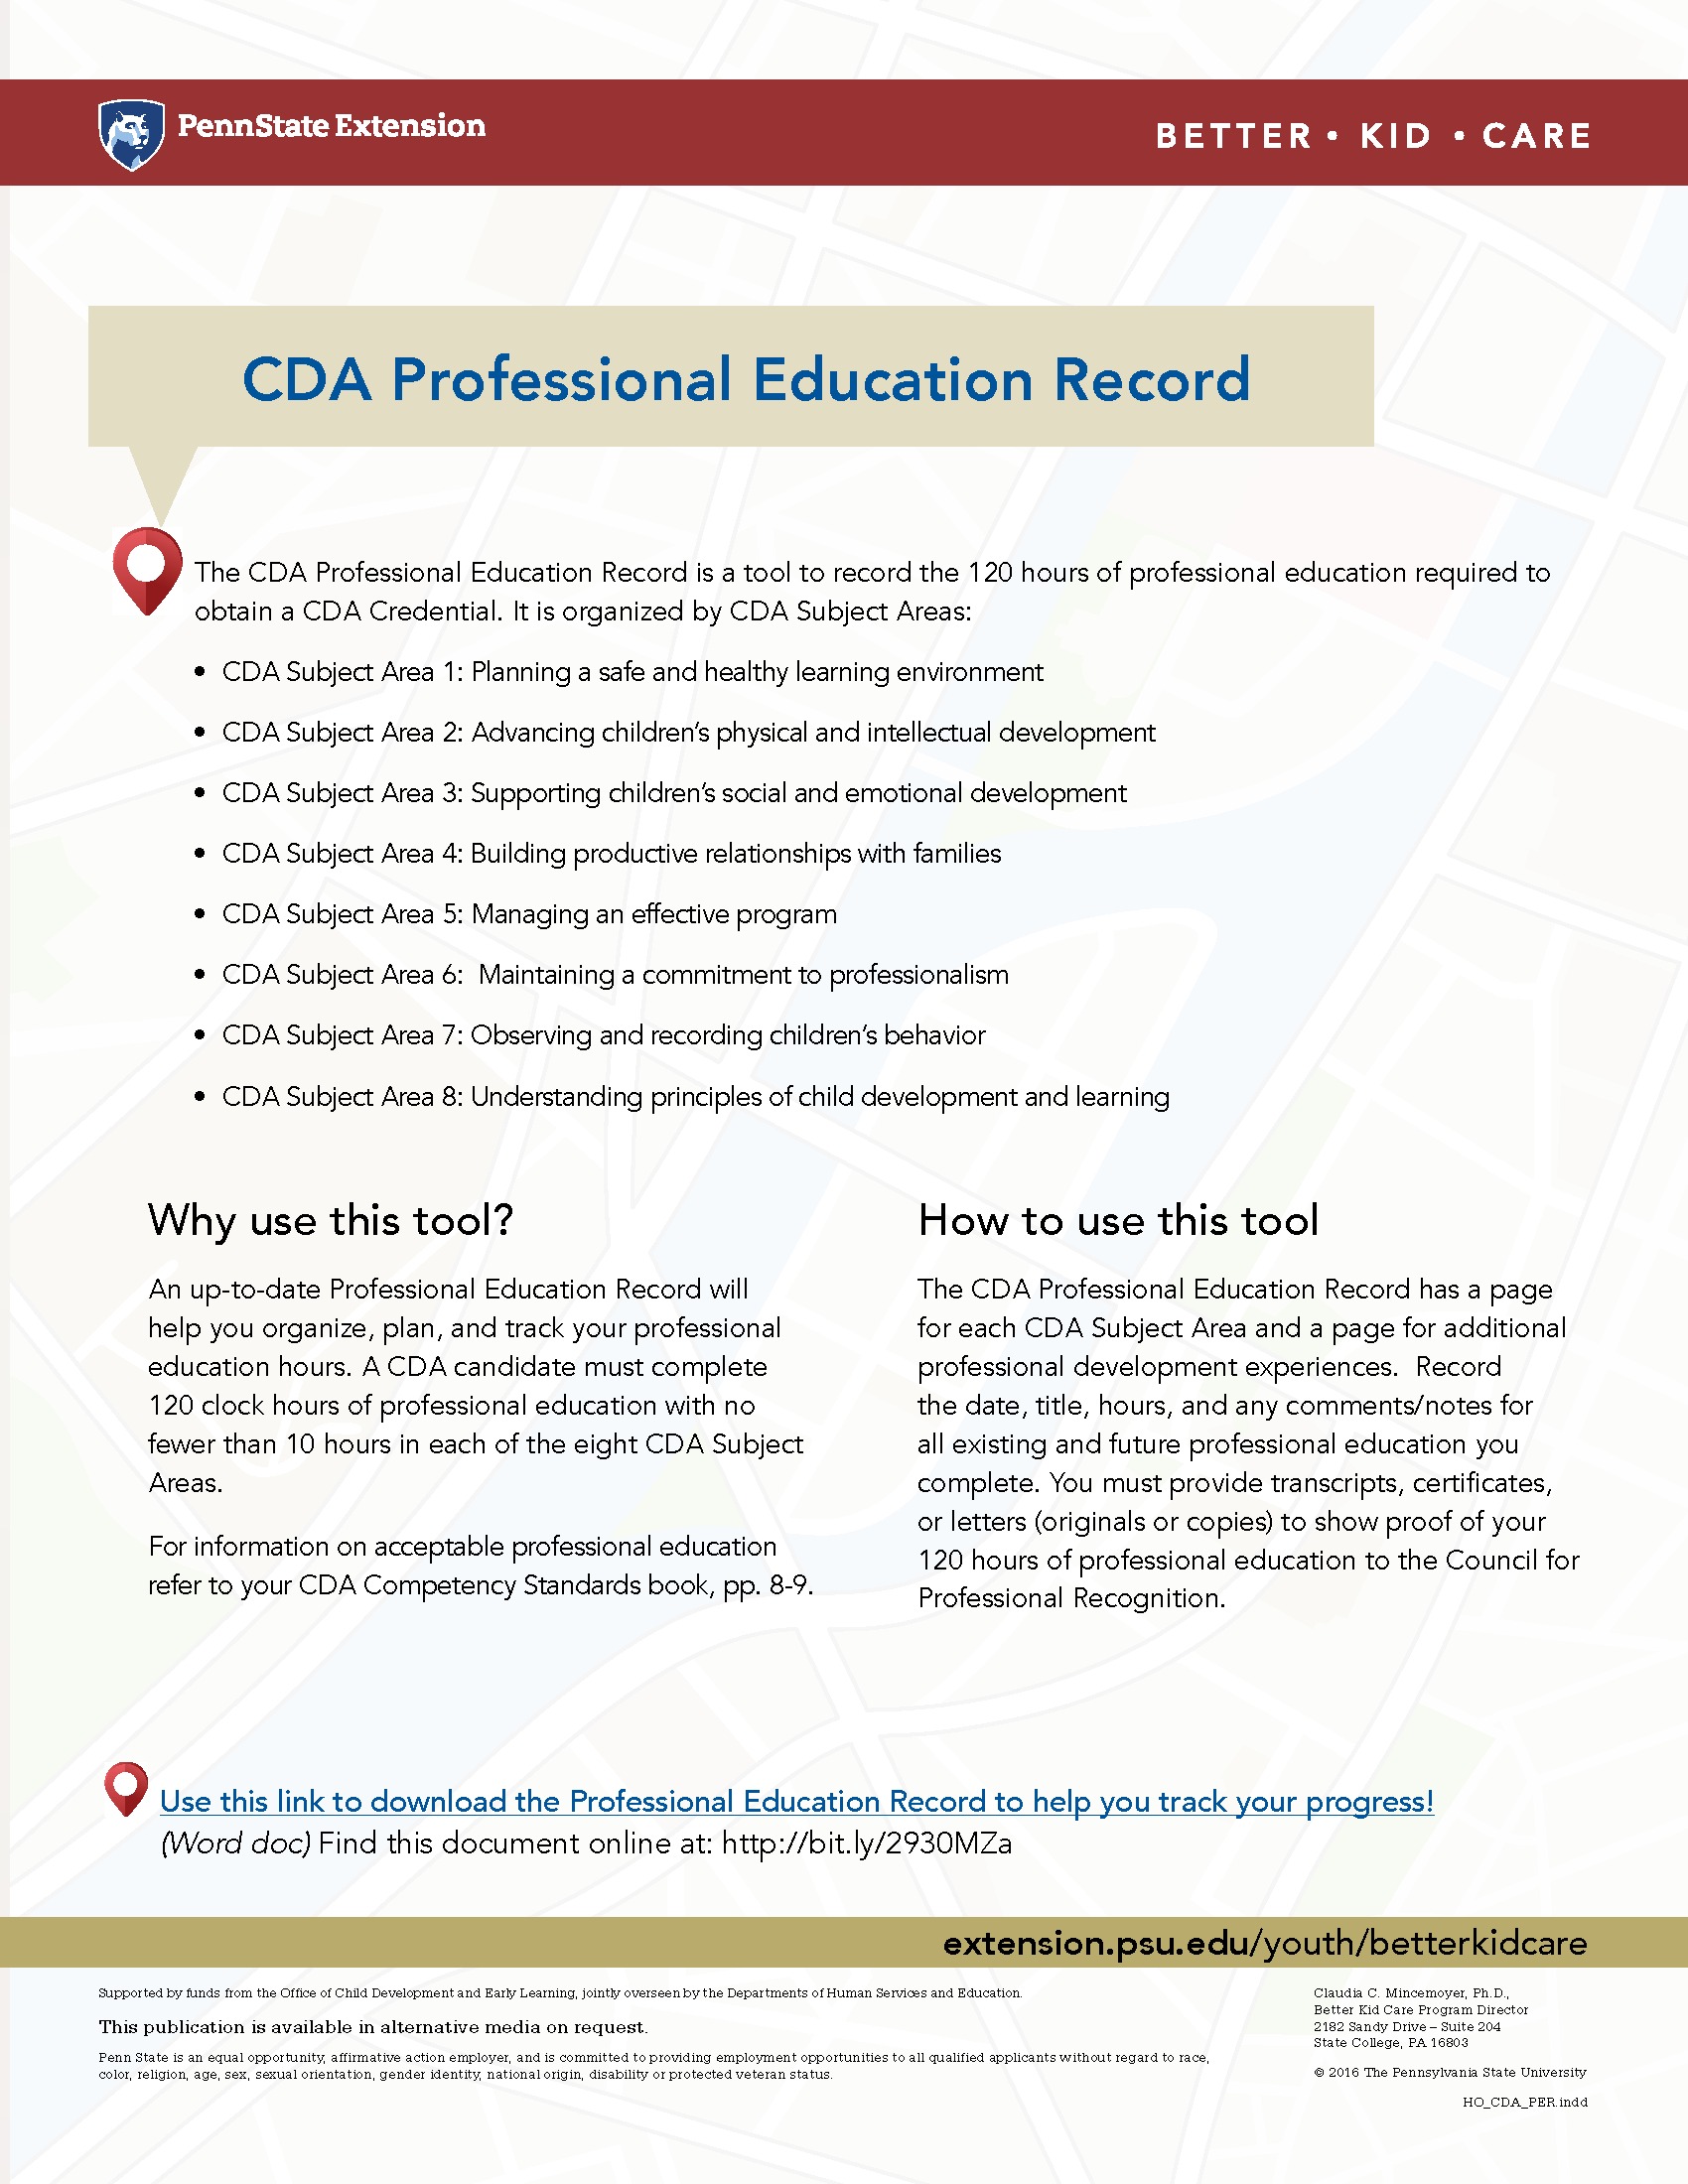 CDA Professional Education Record A tool to help